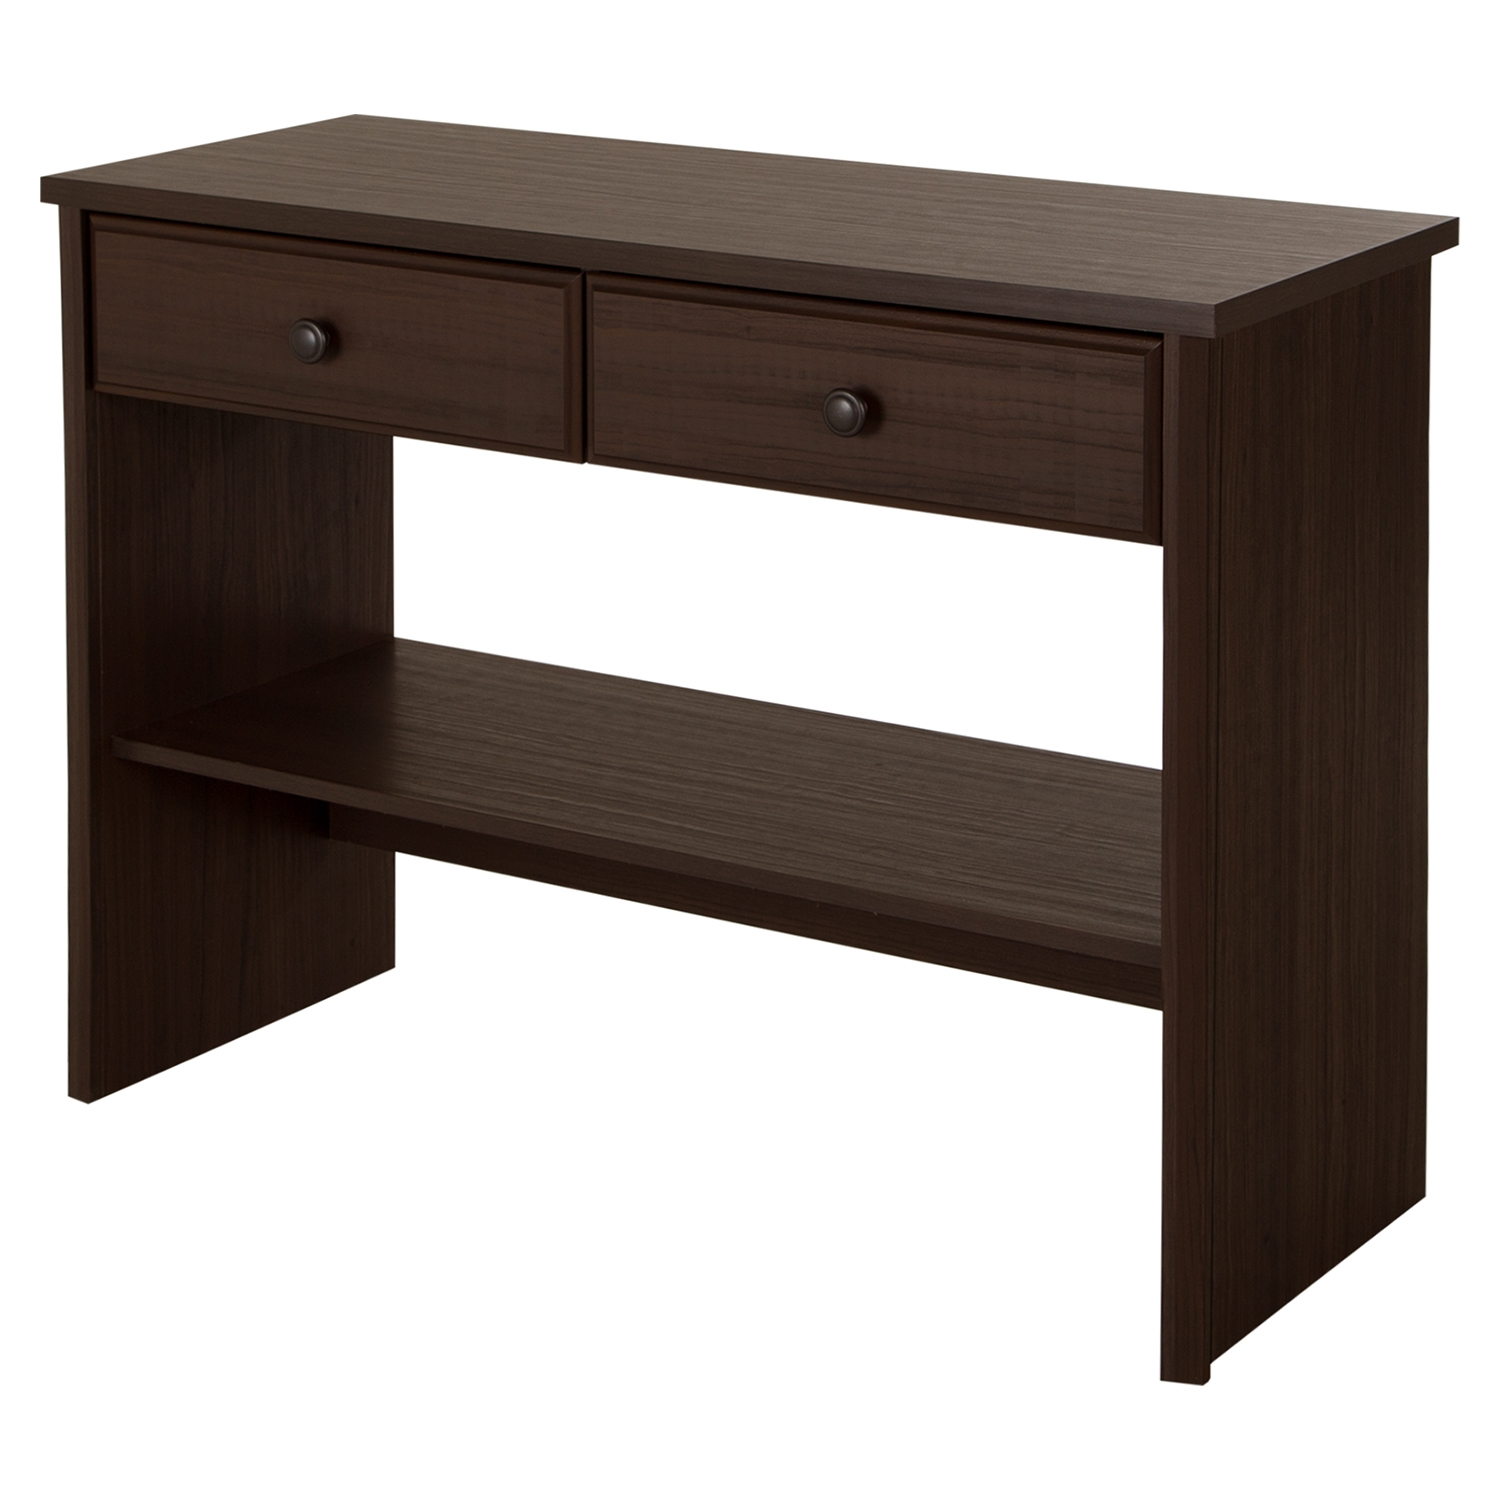 Beaujolais Console Table 2 Drawers Matte Brown Dcg Stores